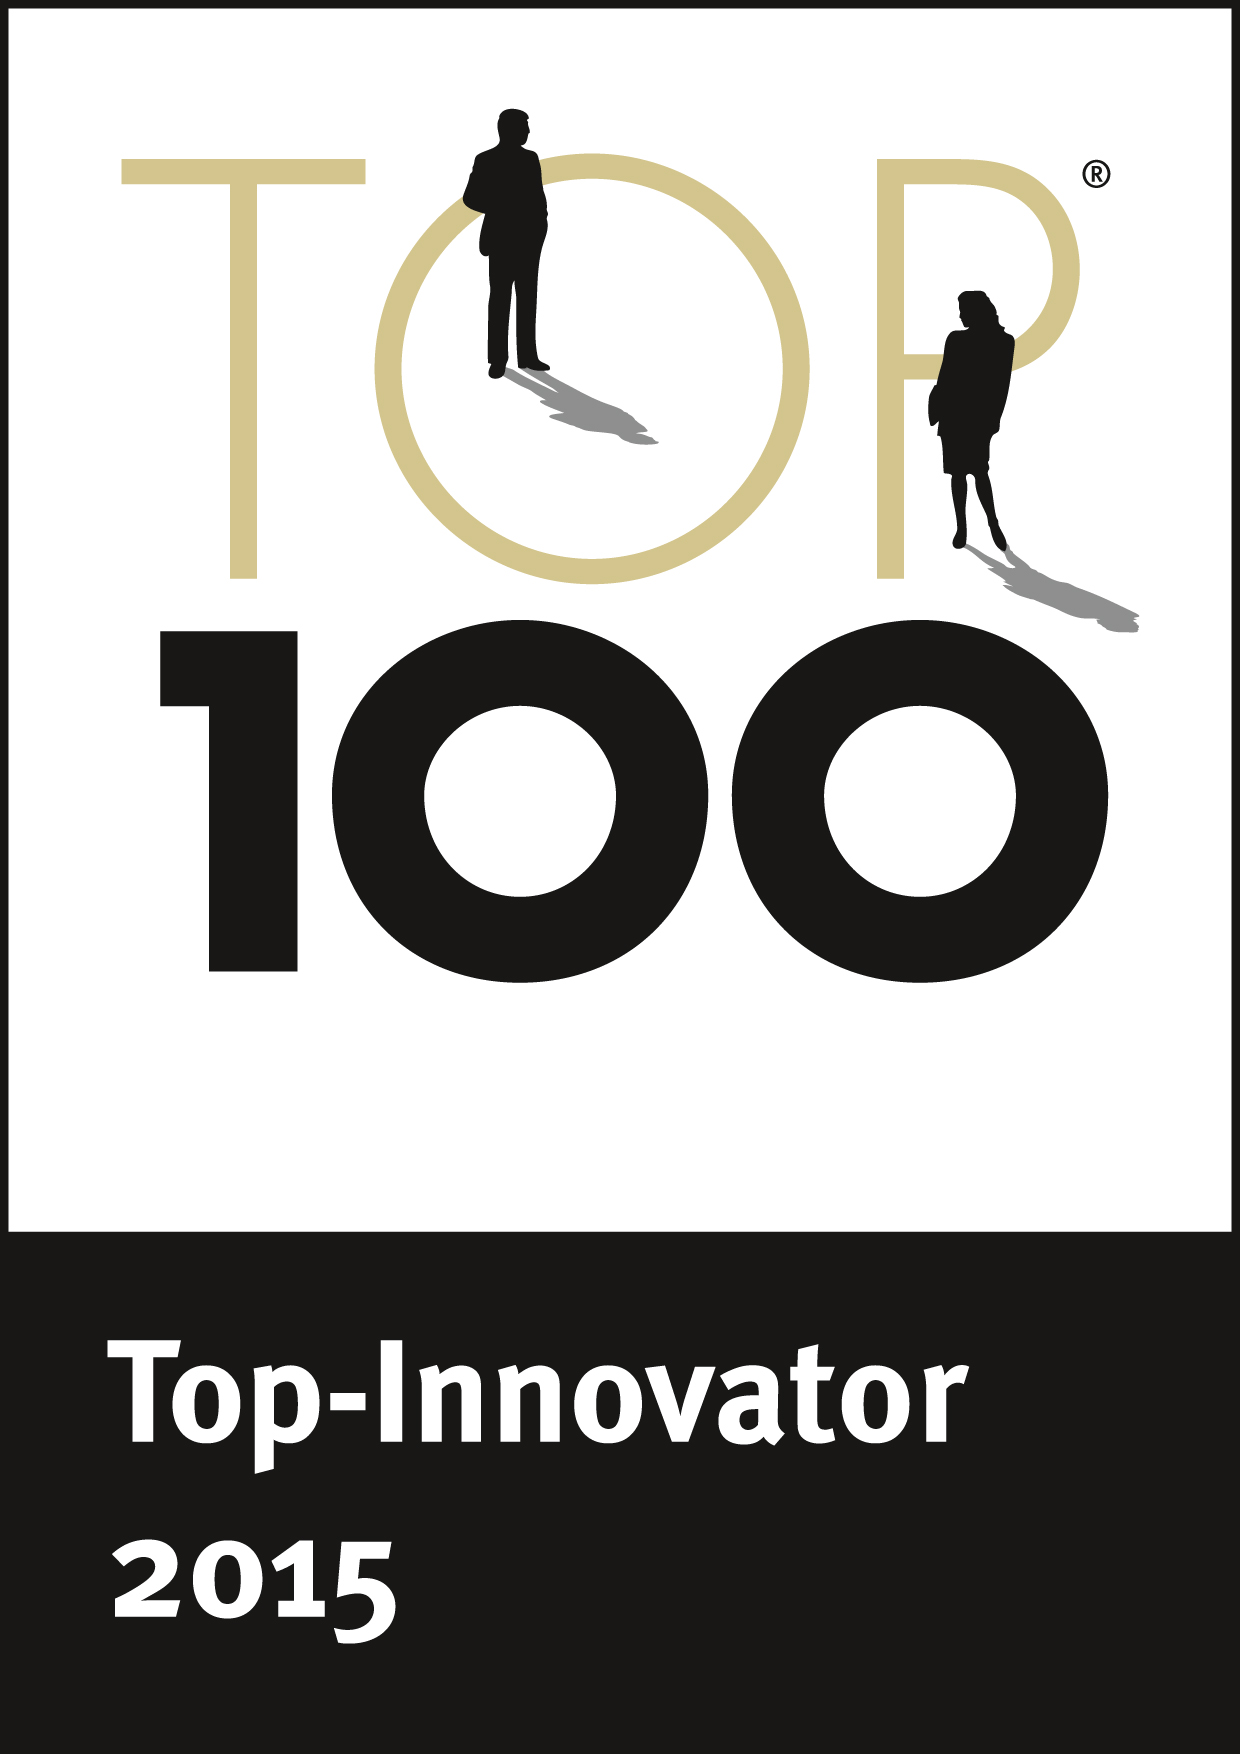 top 100 innovator 2015 award for humintech company